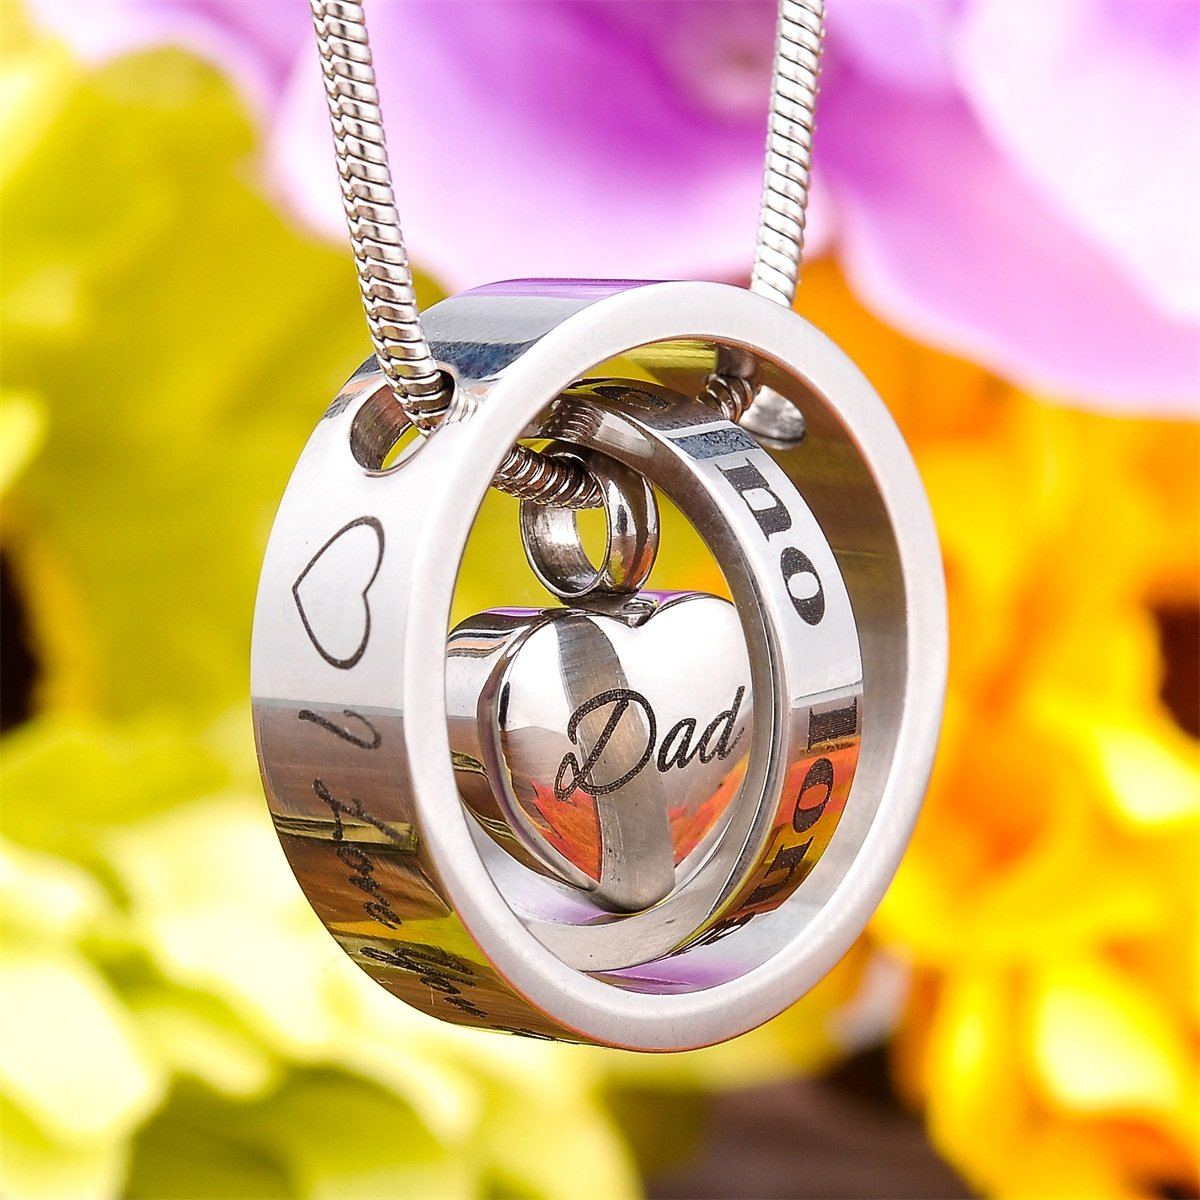 Housweety Cremation Urn Necklace Keepsake Ashes Holder Memorial Urn Pendants with I love you to the moon and back Dad by Housweety (Image #3)